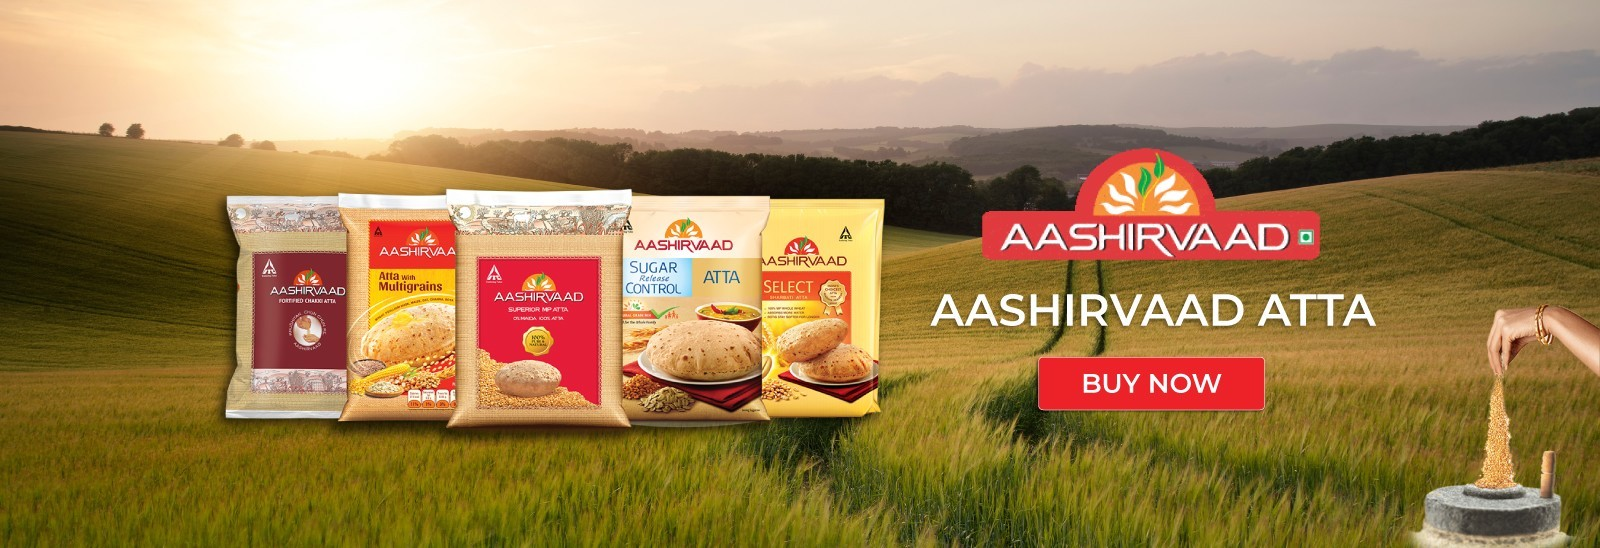 Aashirvaad Atta Price in Germany | Buy Aashirvaad Atta Online